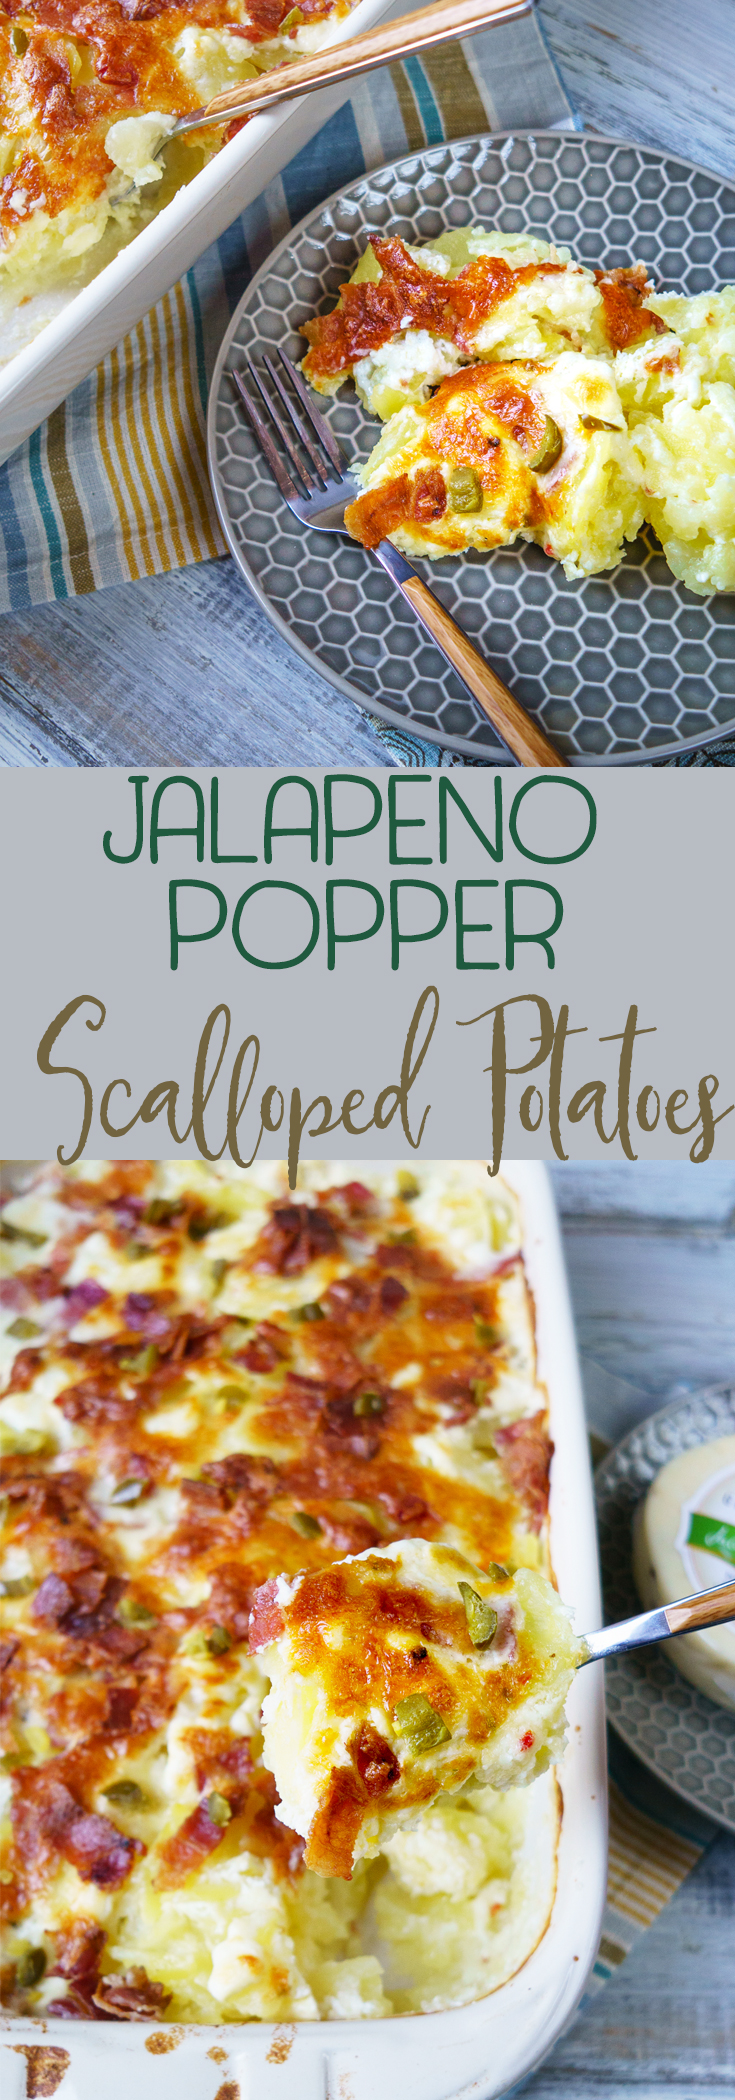 Scalloped potatoes with bacon and jalapenos adds a spicy twist on your favorite creamy and cheesy dish. Features jack cheese, cream cheese, bacon and more!  #scallopedpotatoes #potatoesaugratin #bacon  via @mrsmajorhoff